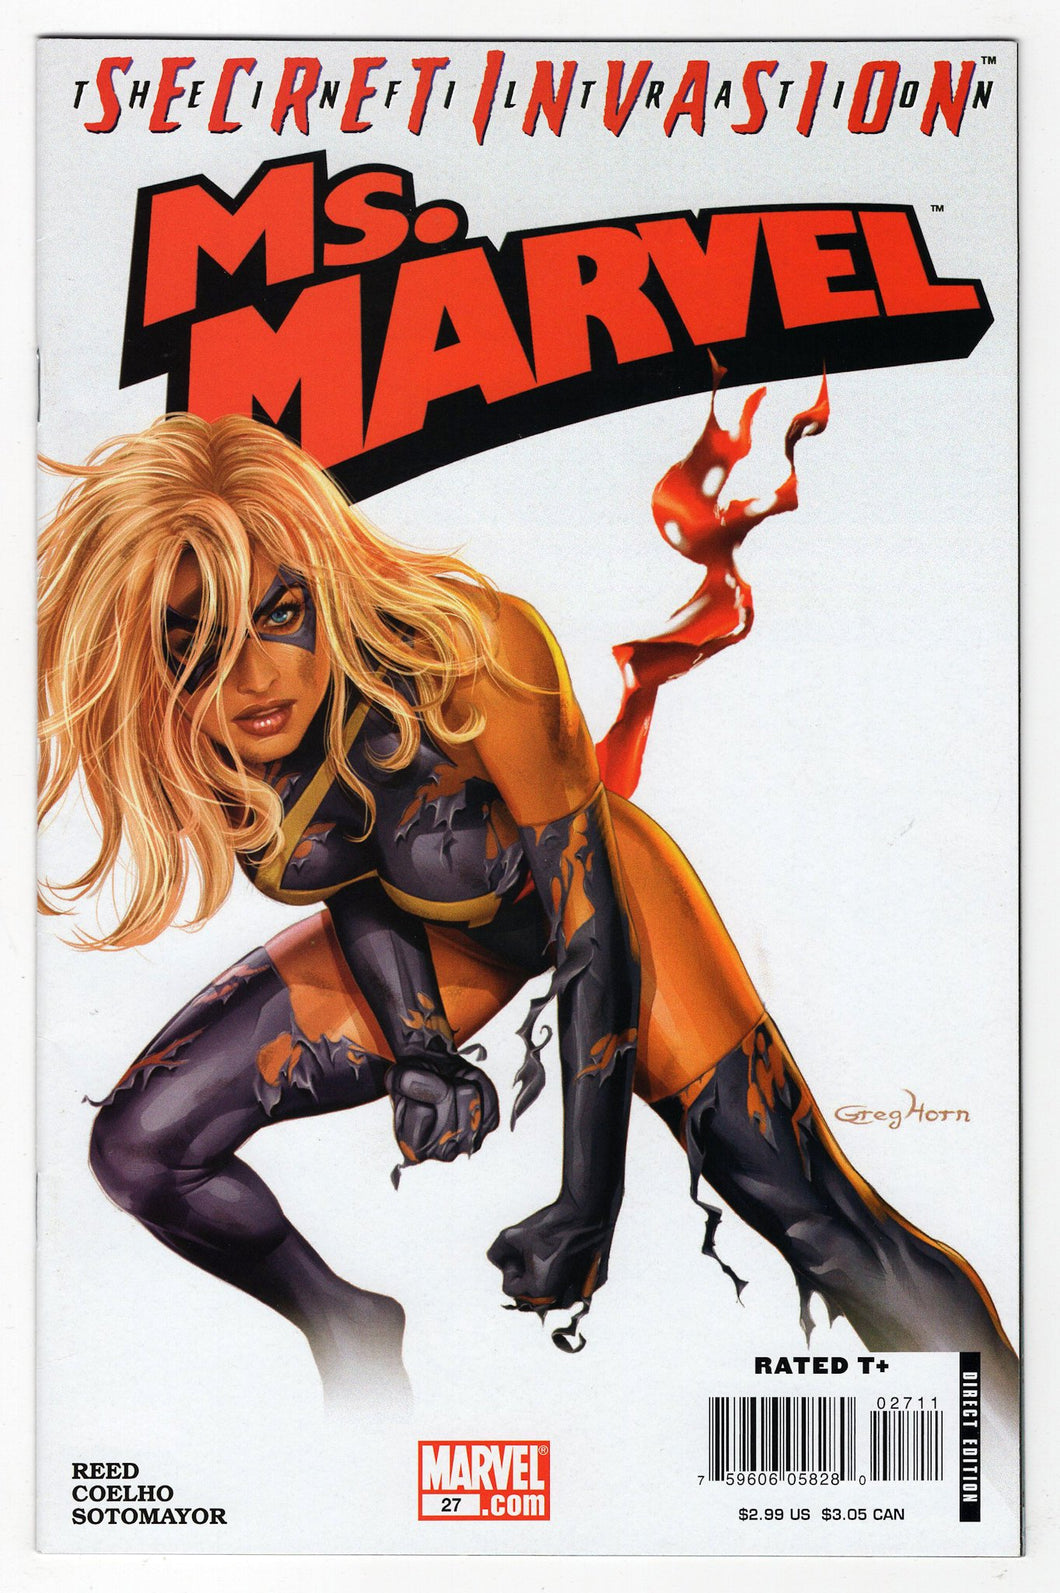 Ms Marvel #27 Cover Front